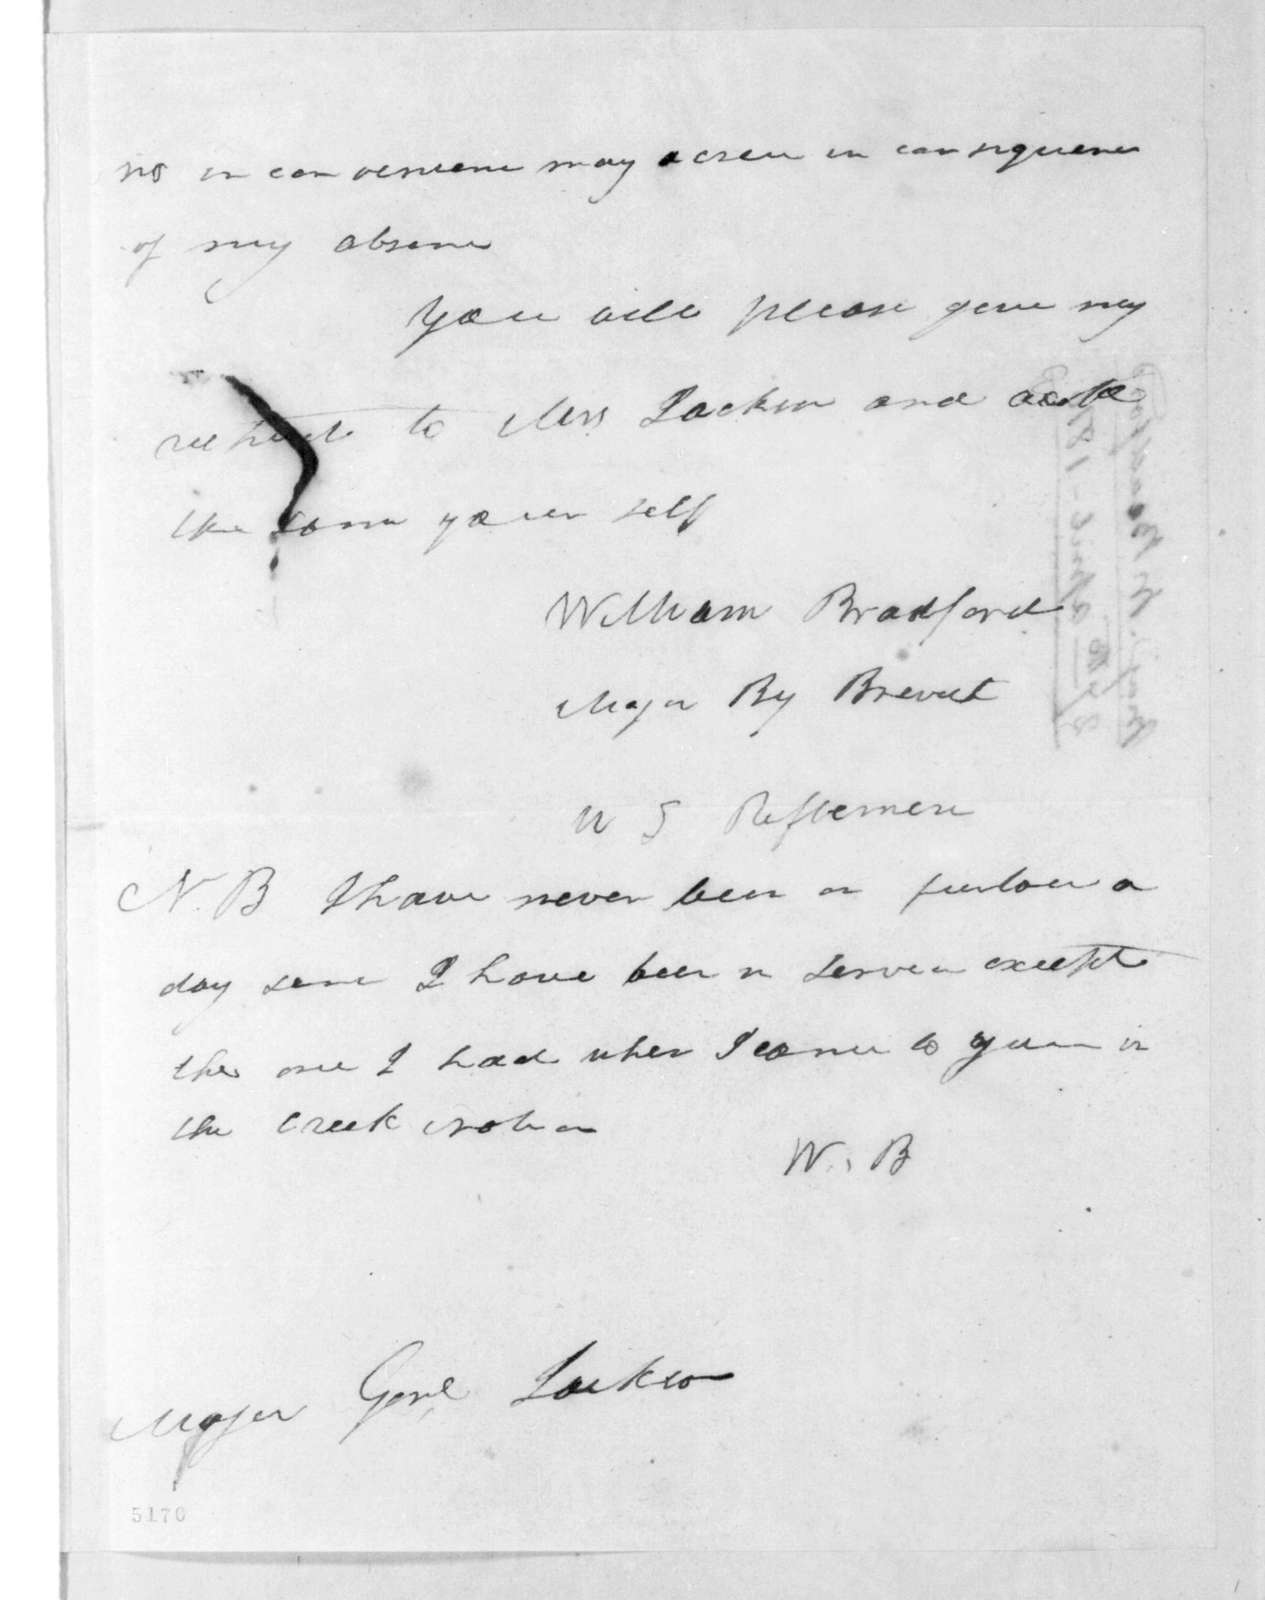 William Bradford to Andrew Jackson, April 27, 1816